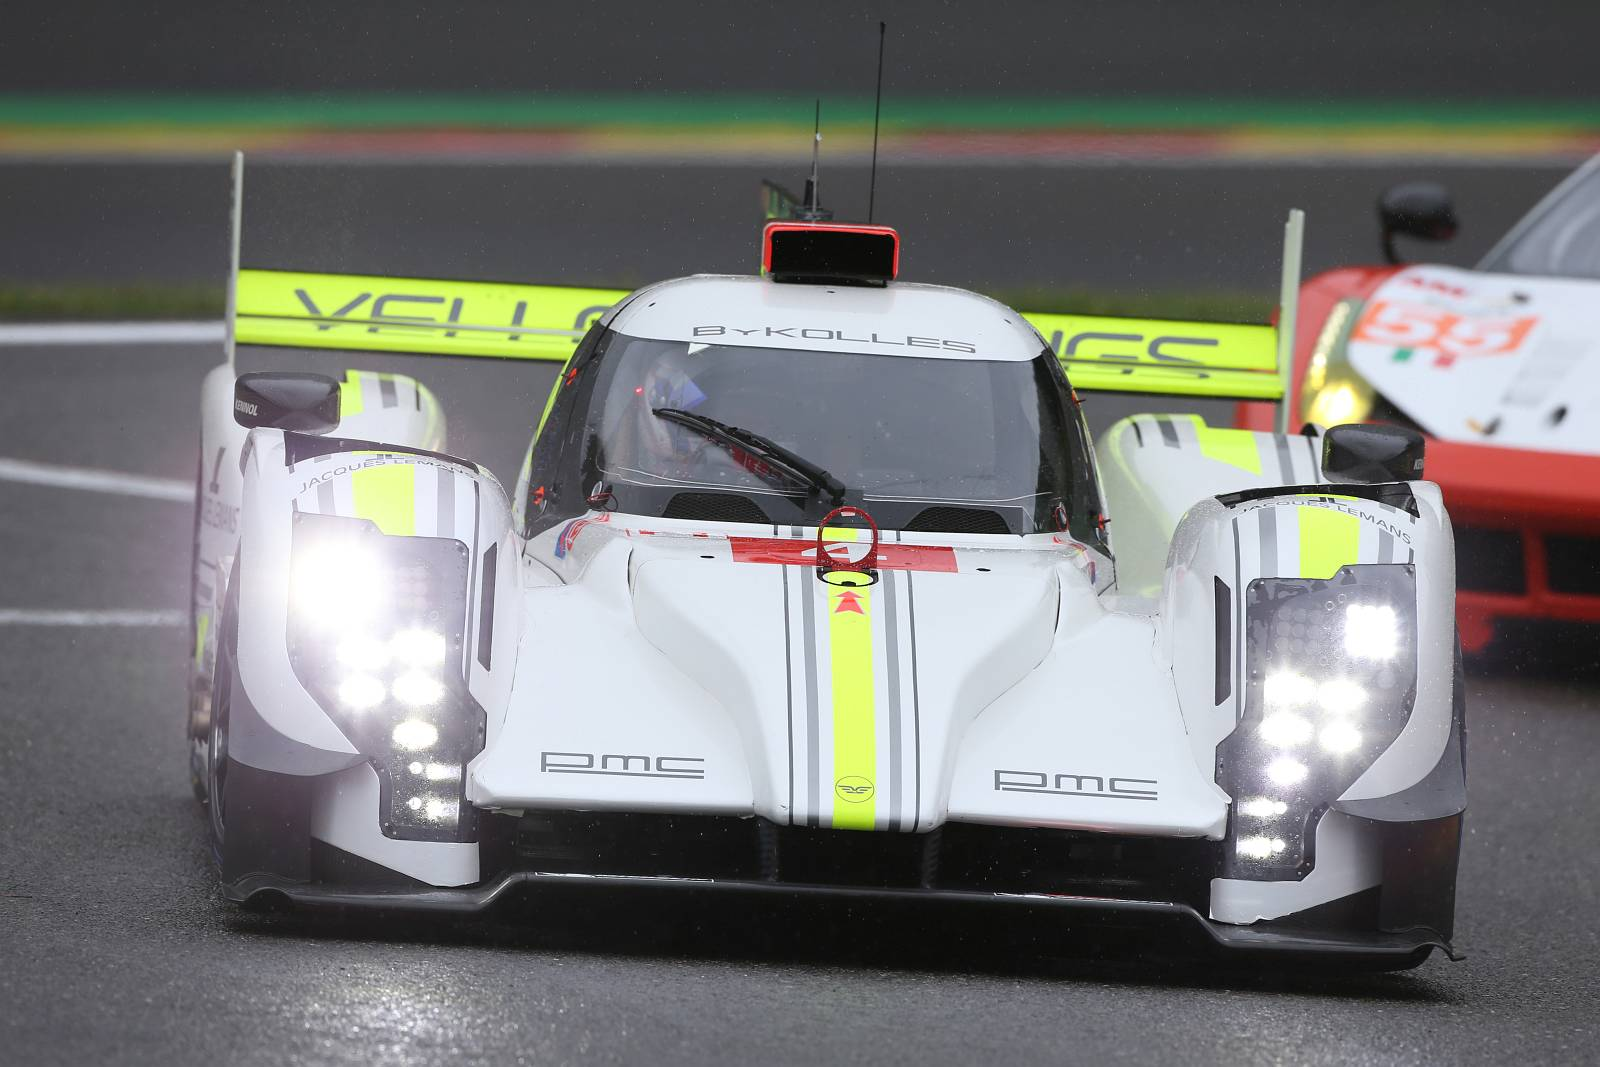 byKOLLES-racing-WEC-spa-2015-009